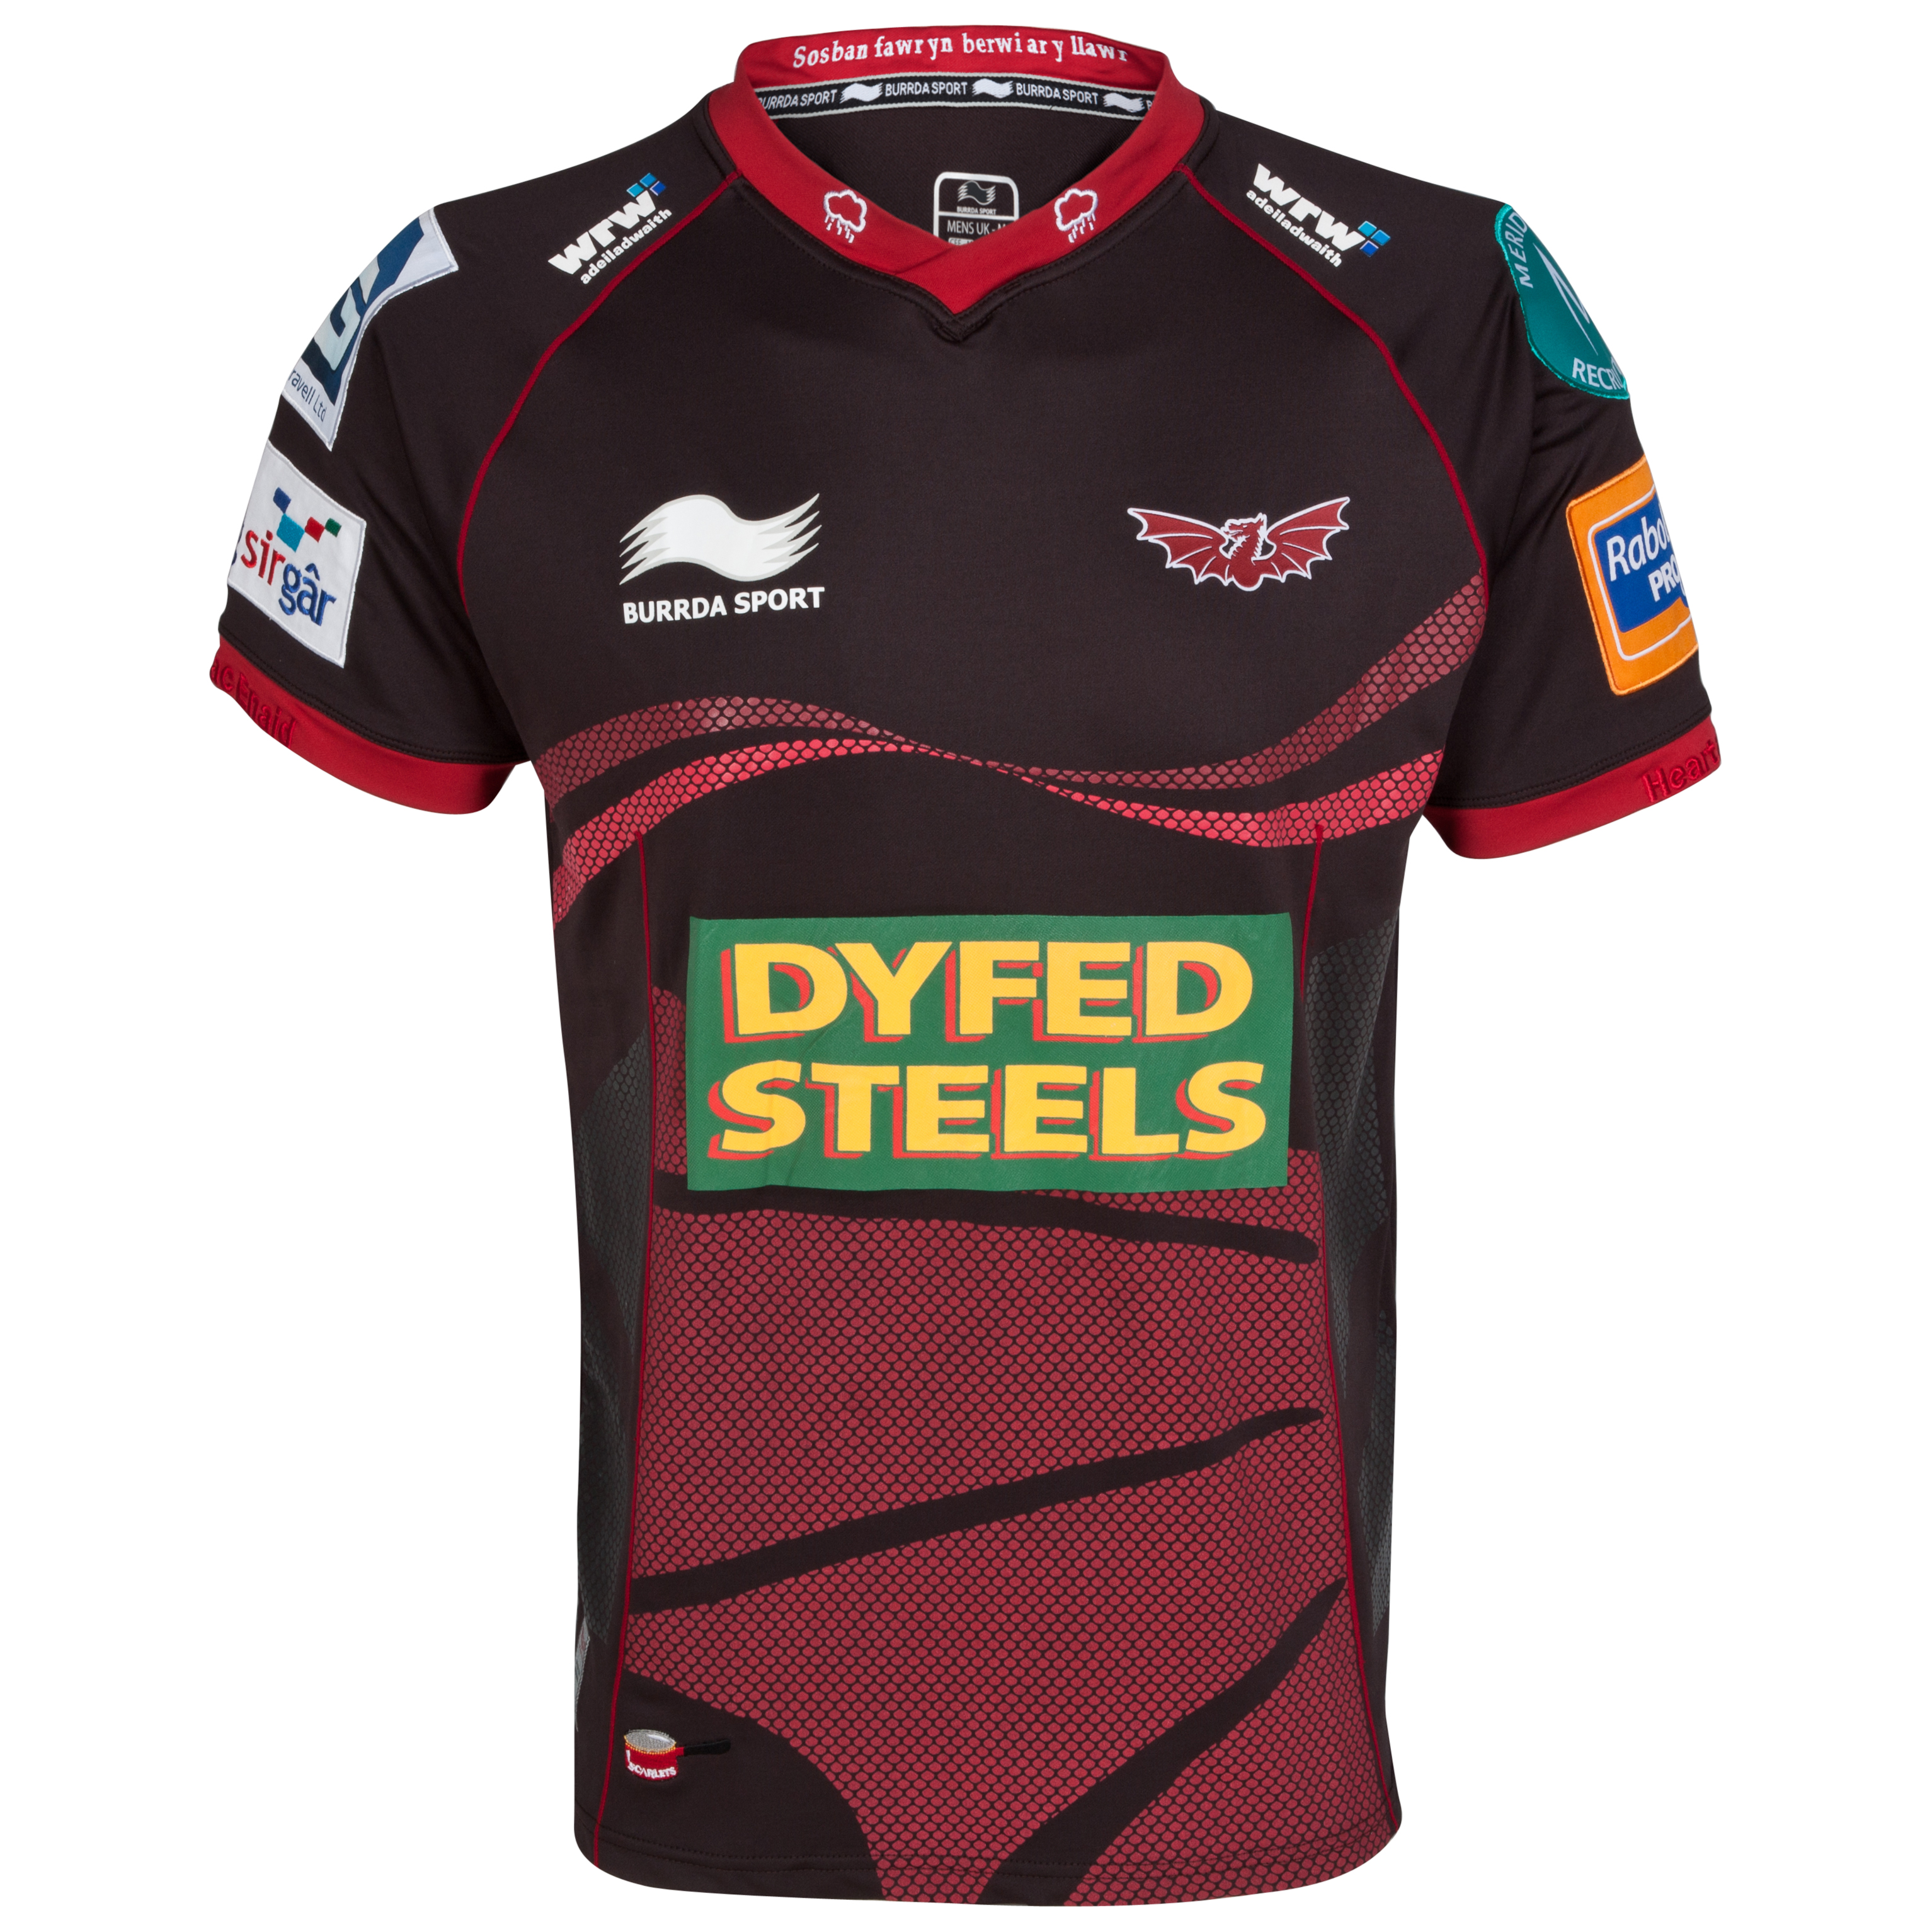 Llanelli Scarlets Away Match Day Rugby Shirt 2012/13